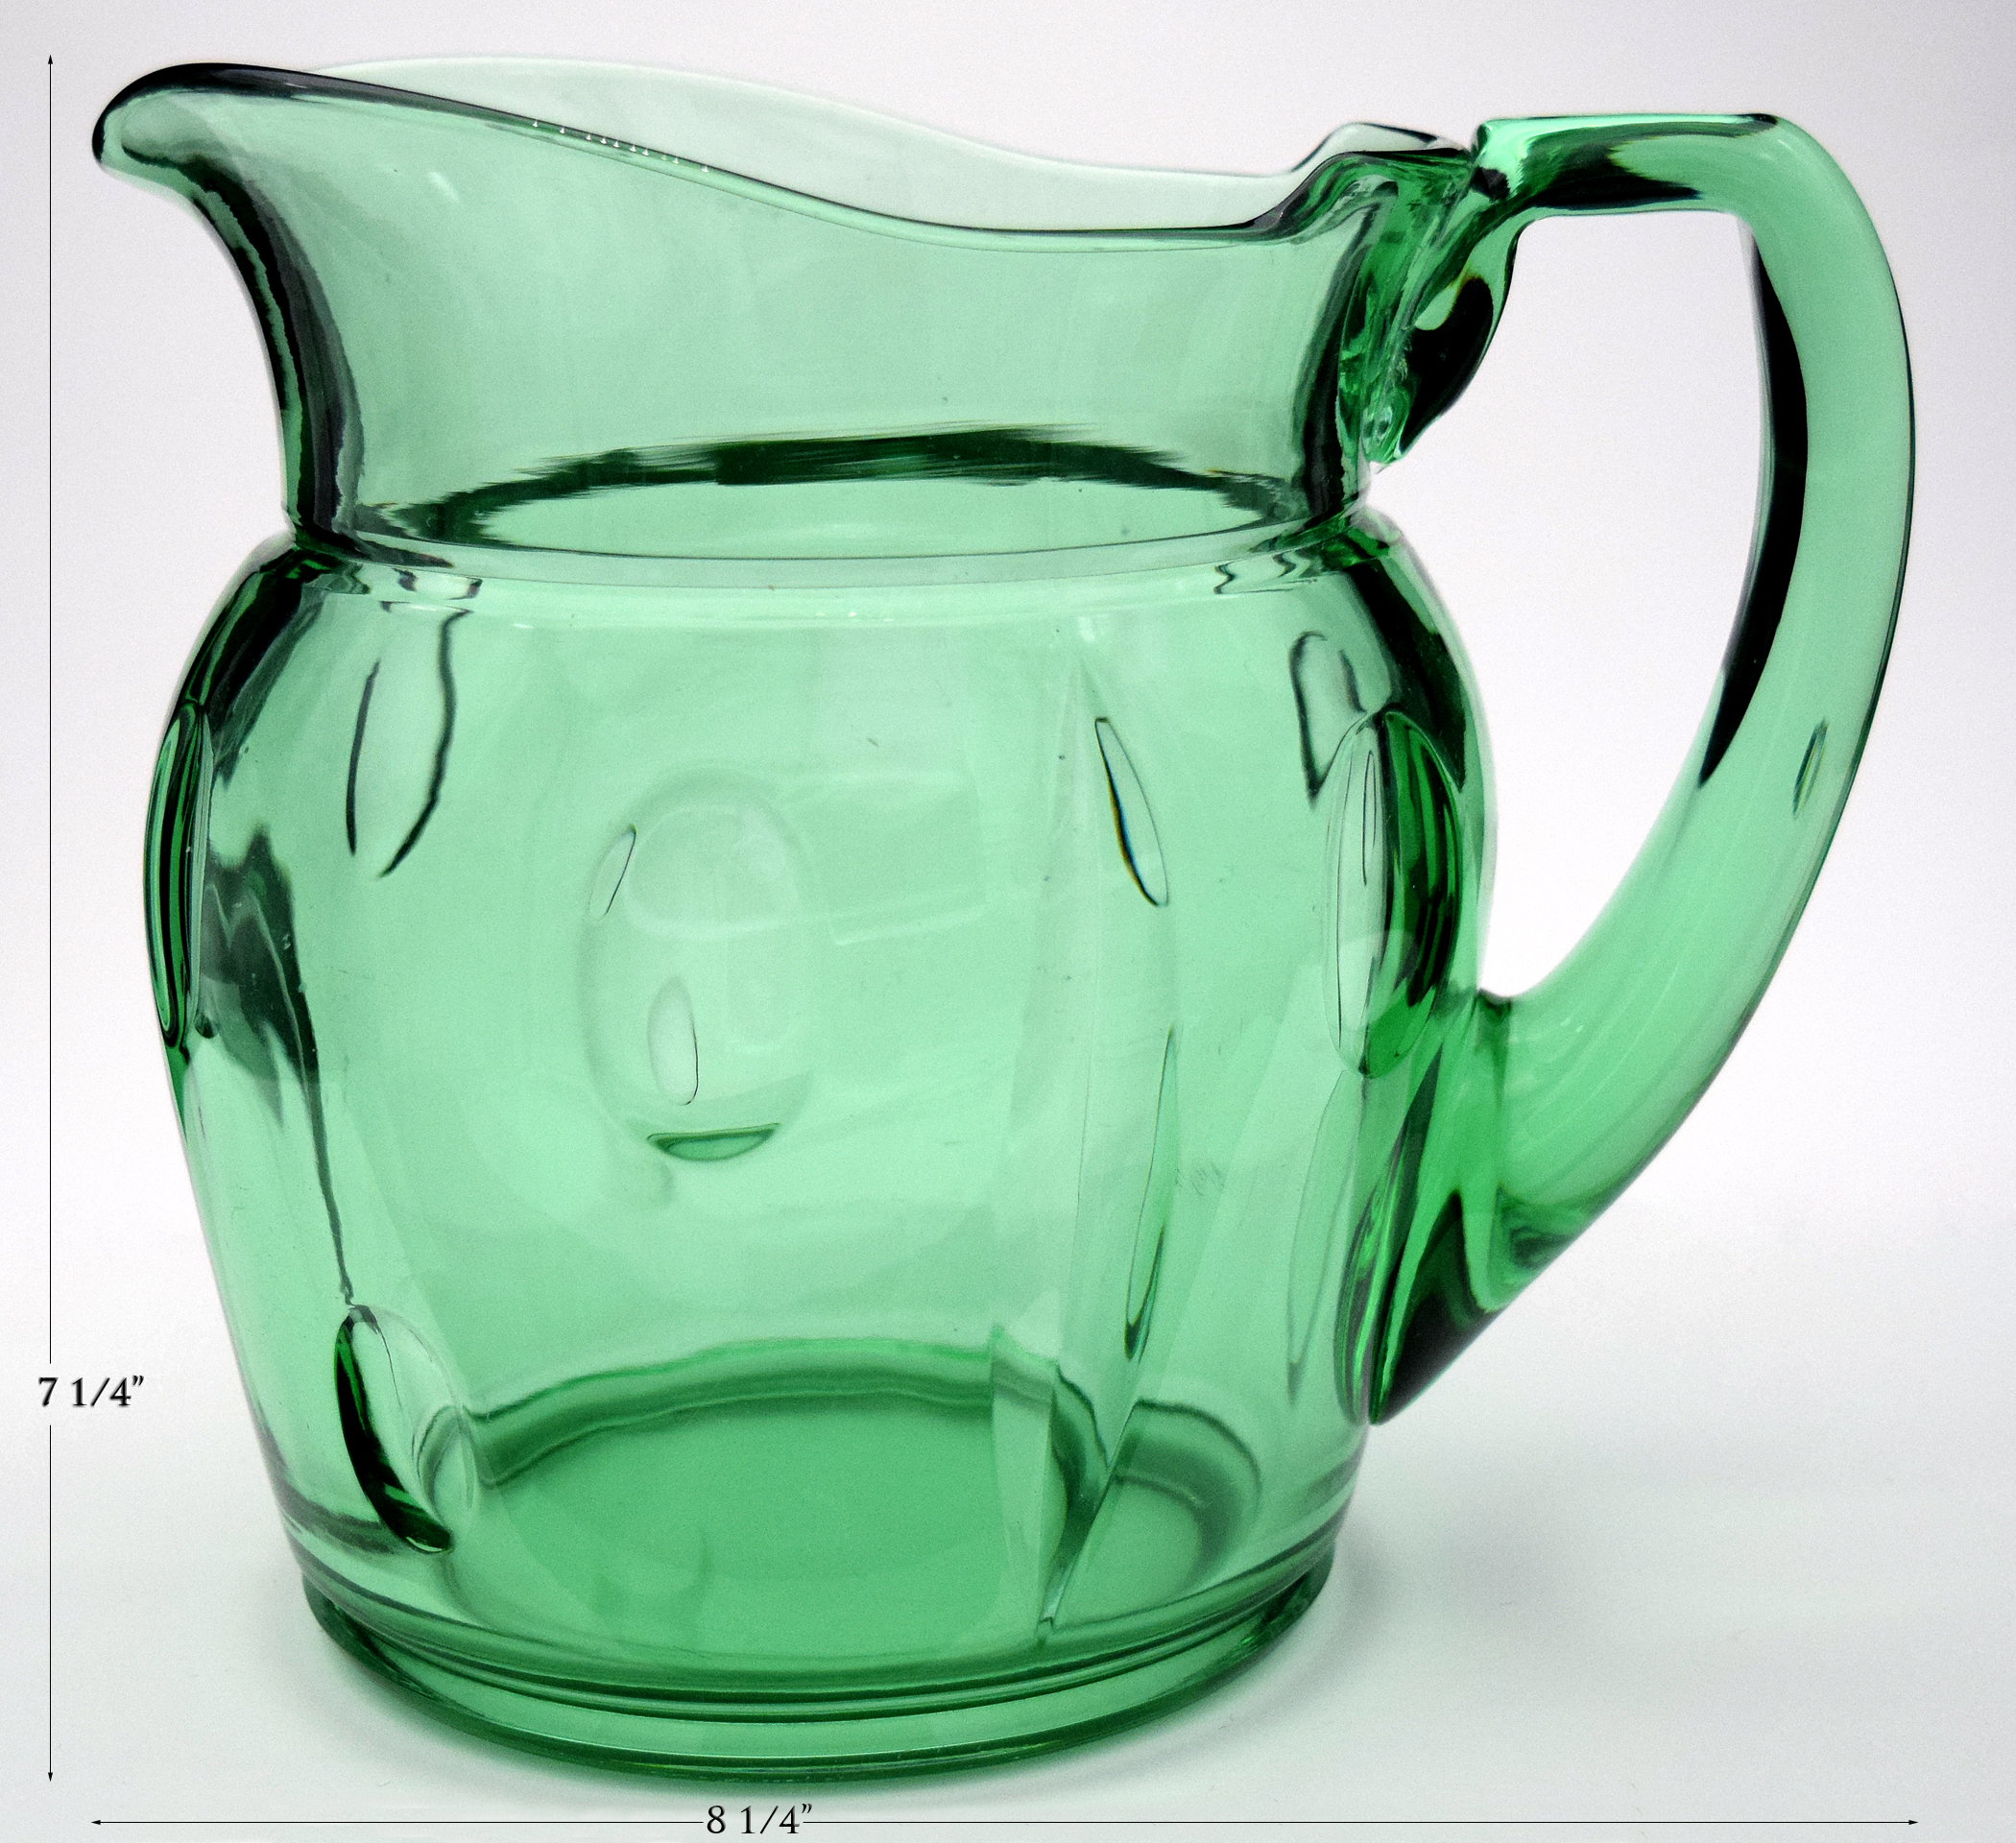 Duncan and Miller Plaza Green Pitcher / Jug